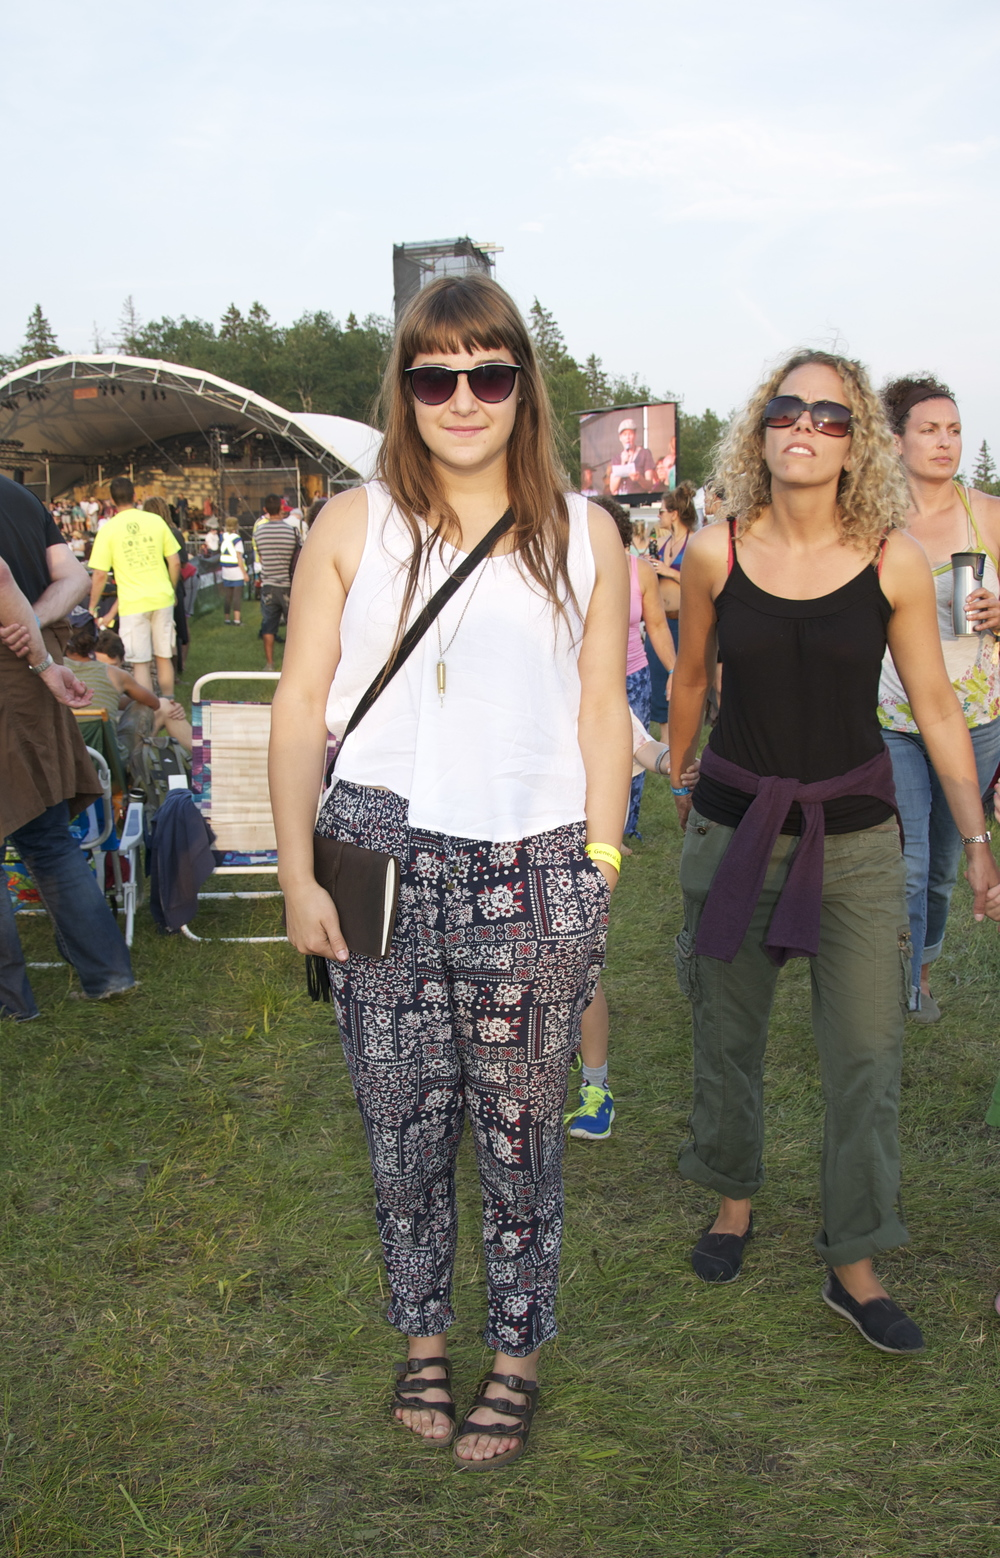 Printed pants + loose white tee + those super great bangs while clutching a leather bound journal…nailed it.